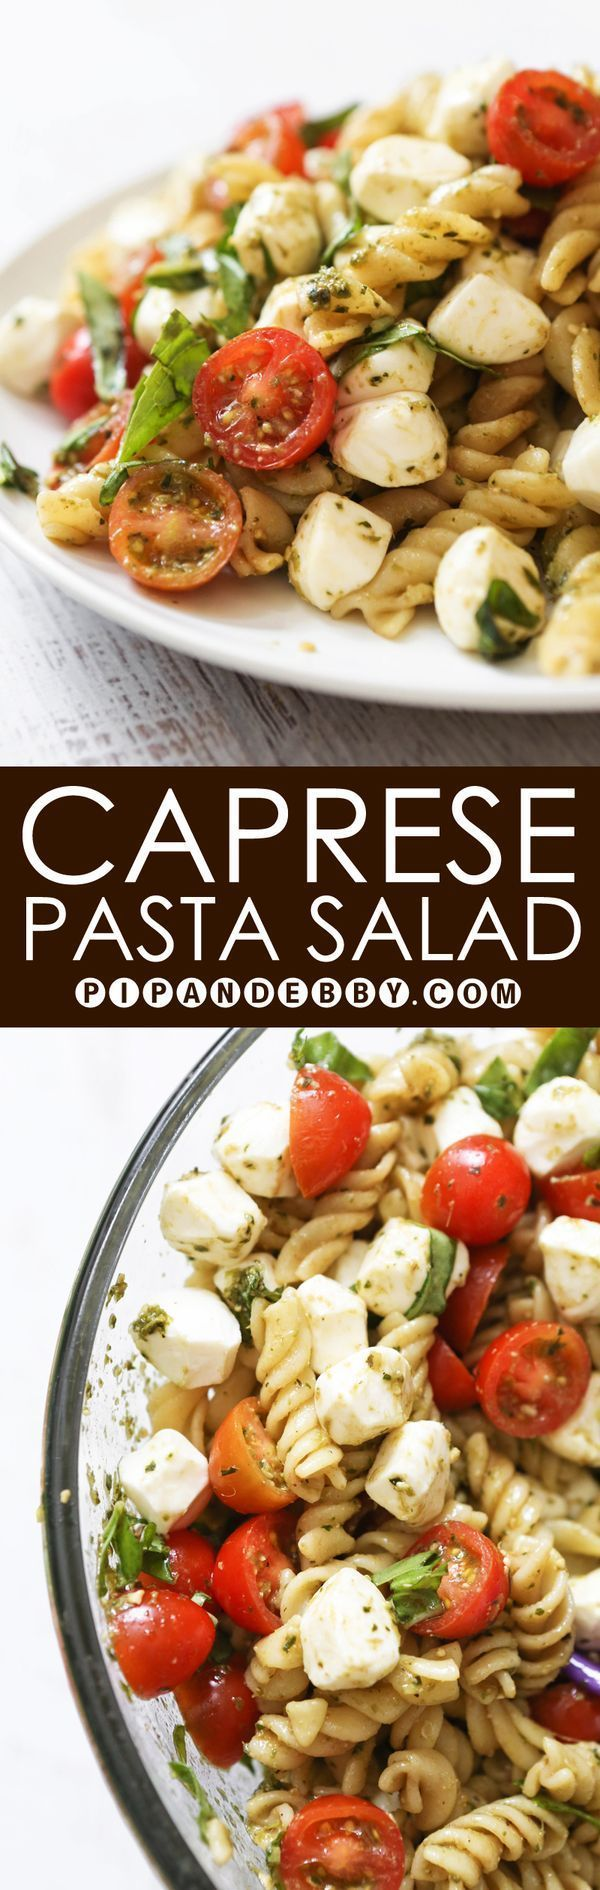 Caprese Pasta Salad   This perfect combination of ingredients is great as an app